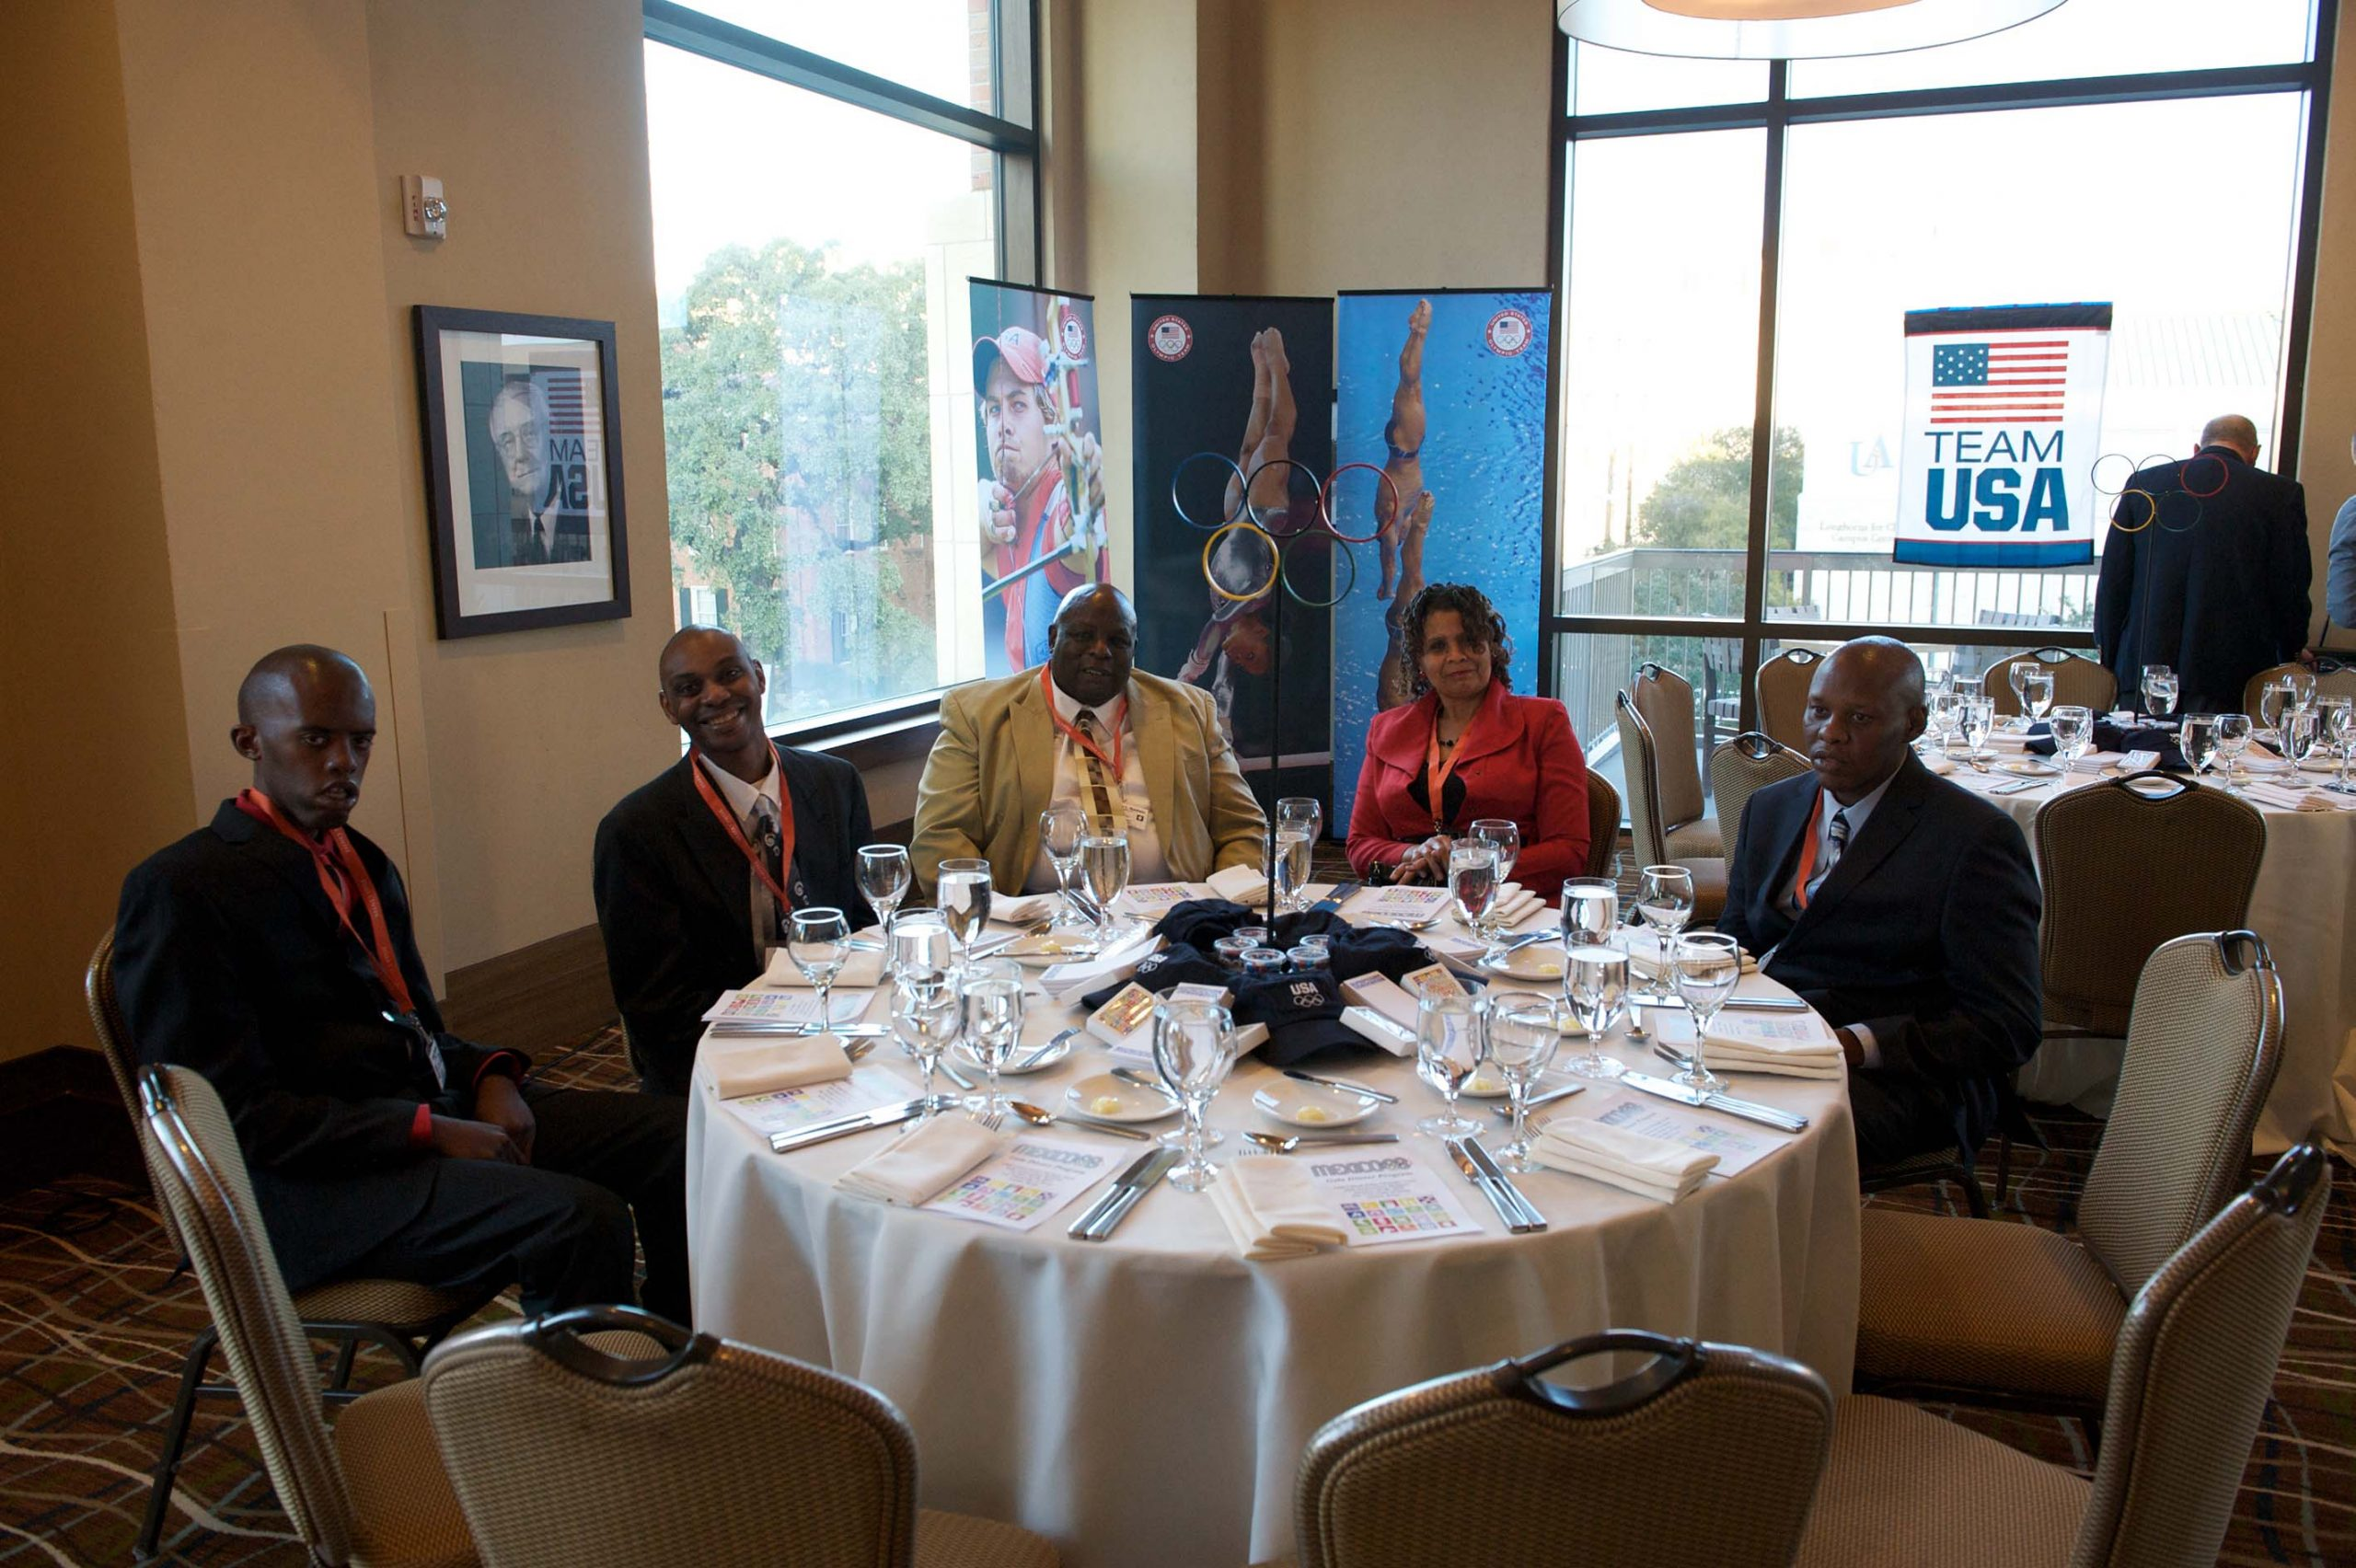 Five people at a table at the 1968 U.S. Olympic Team 2012 Reunion.